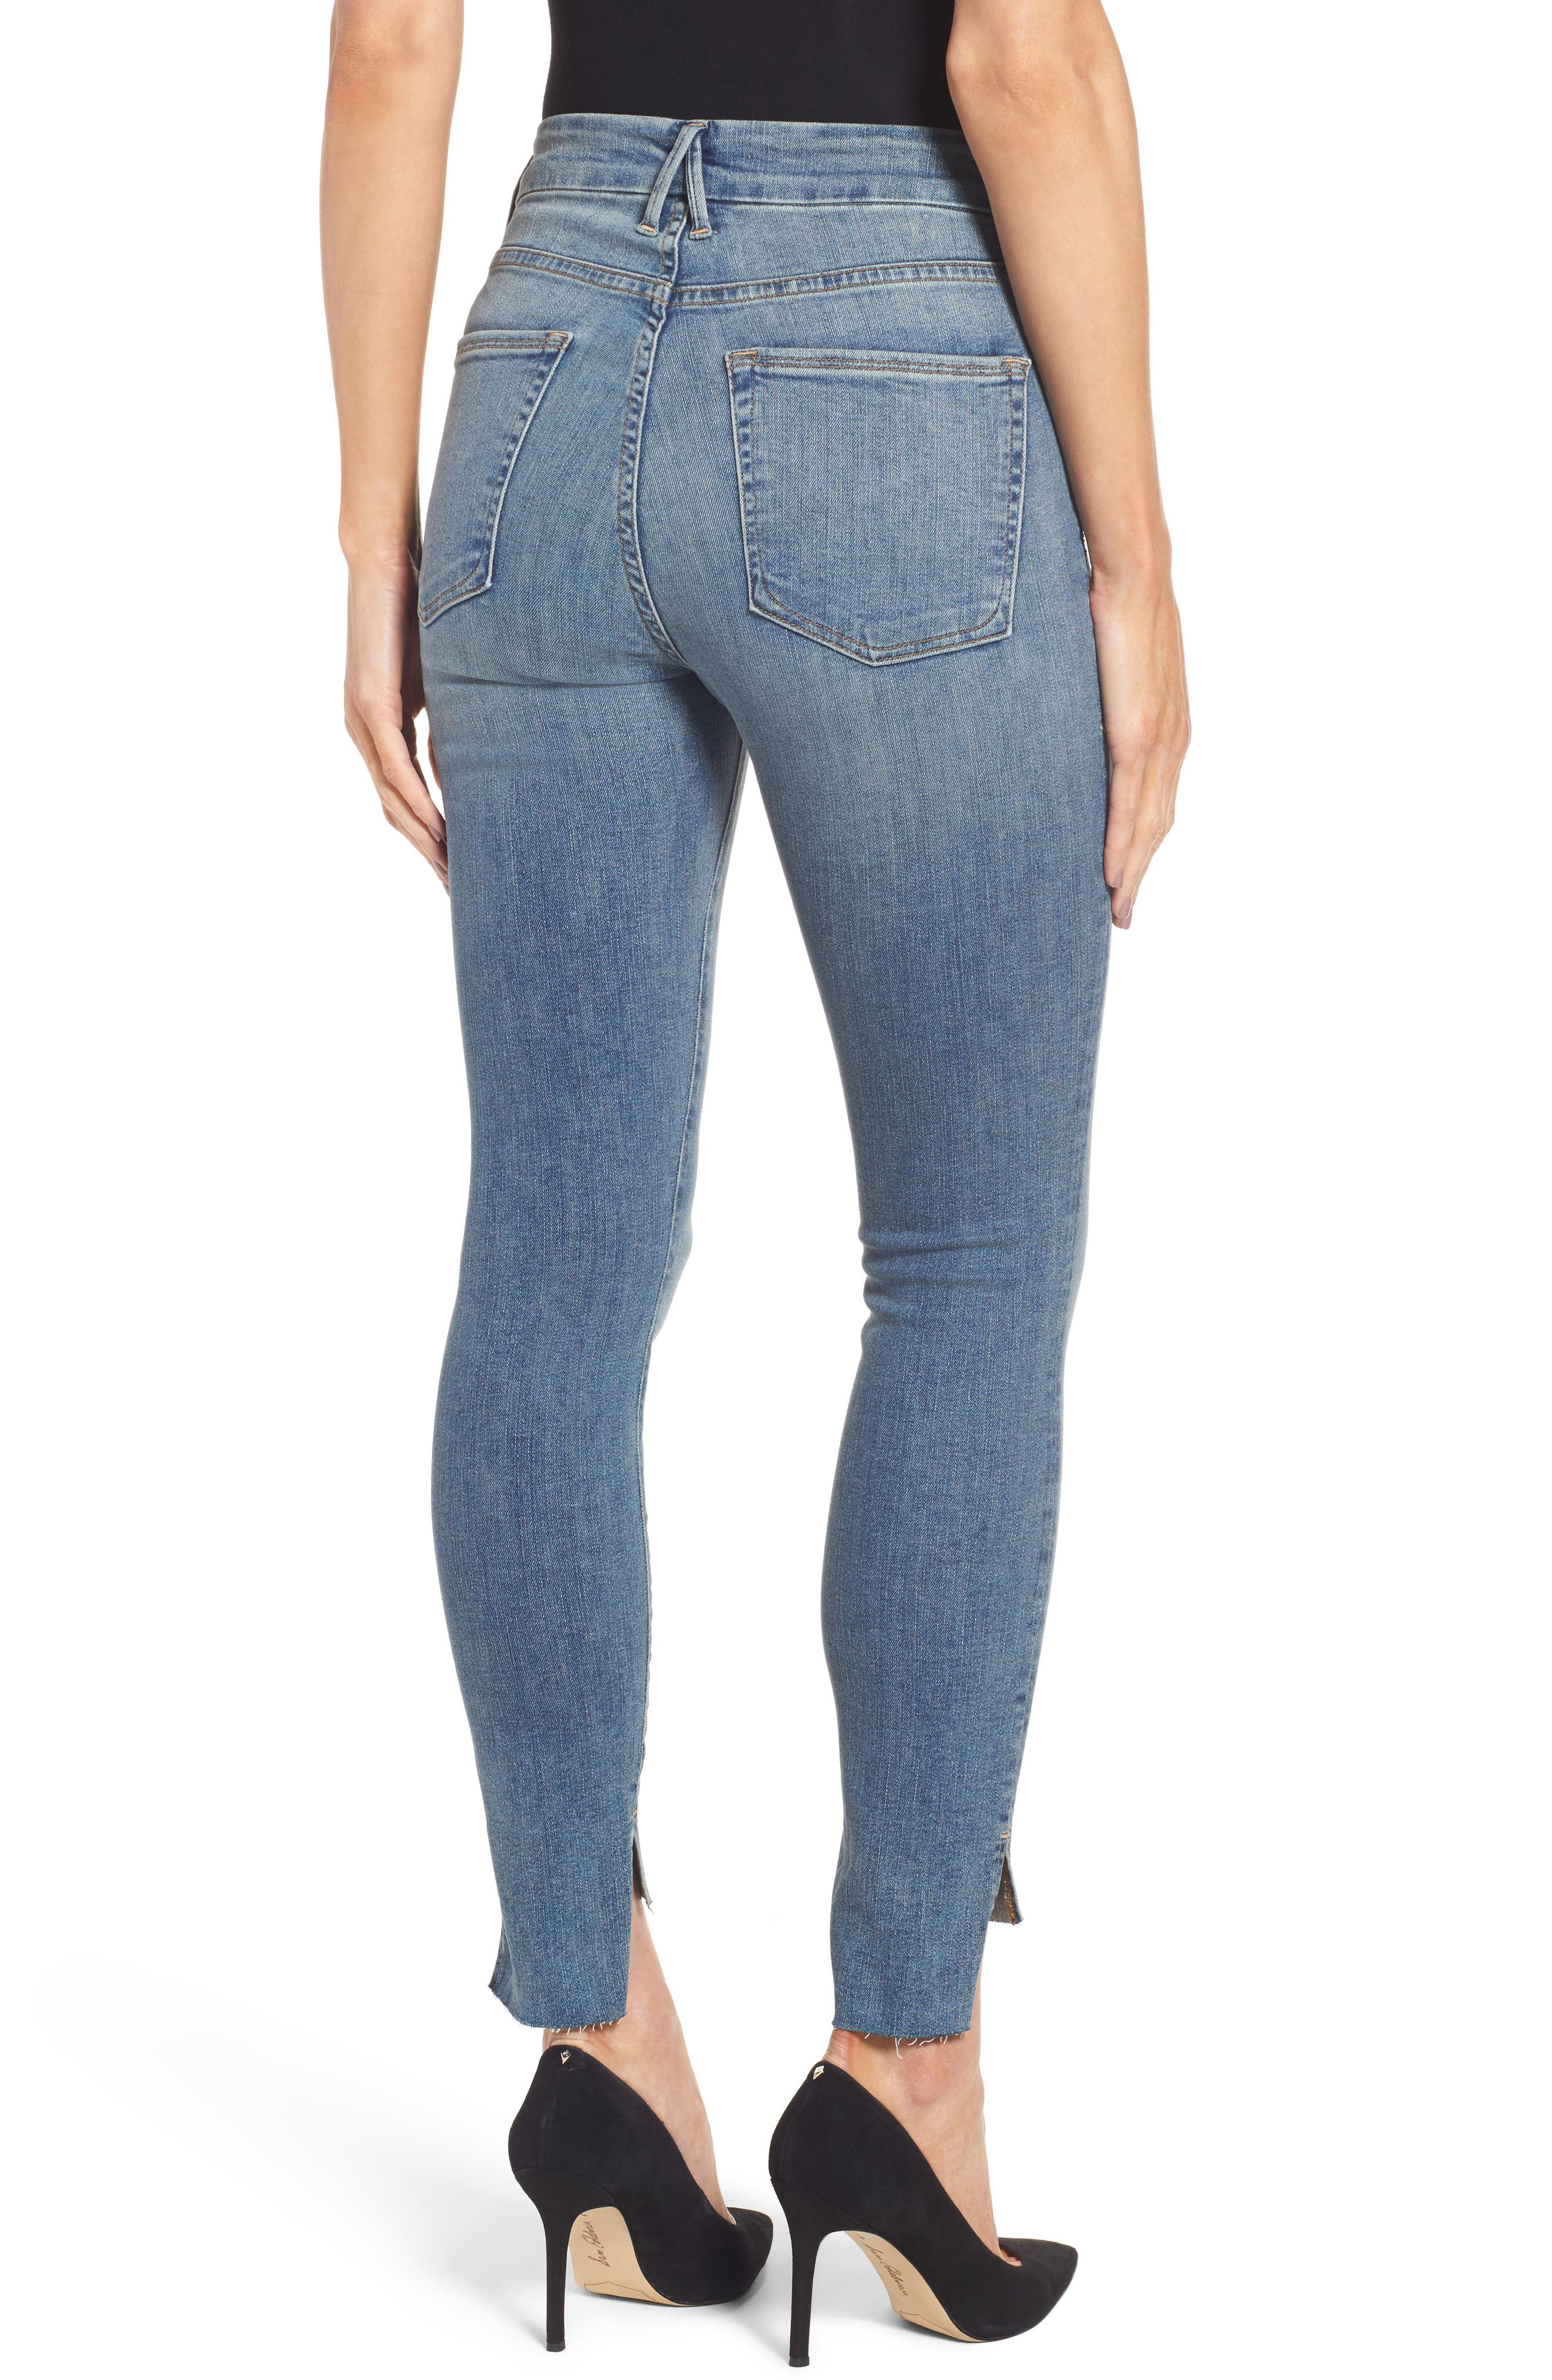 Alternate Image 2  - Good American Good Legs High Waist Skinny Jeans (Blue 082) (Extended Sizes)